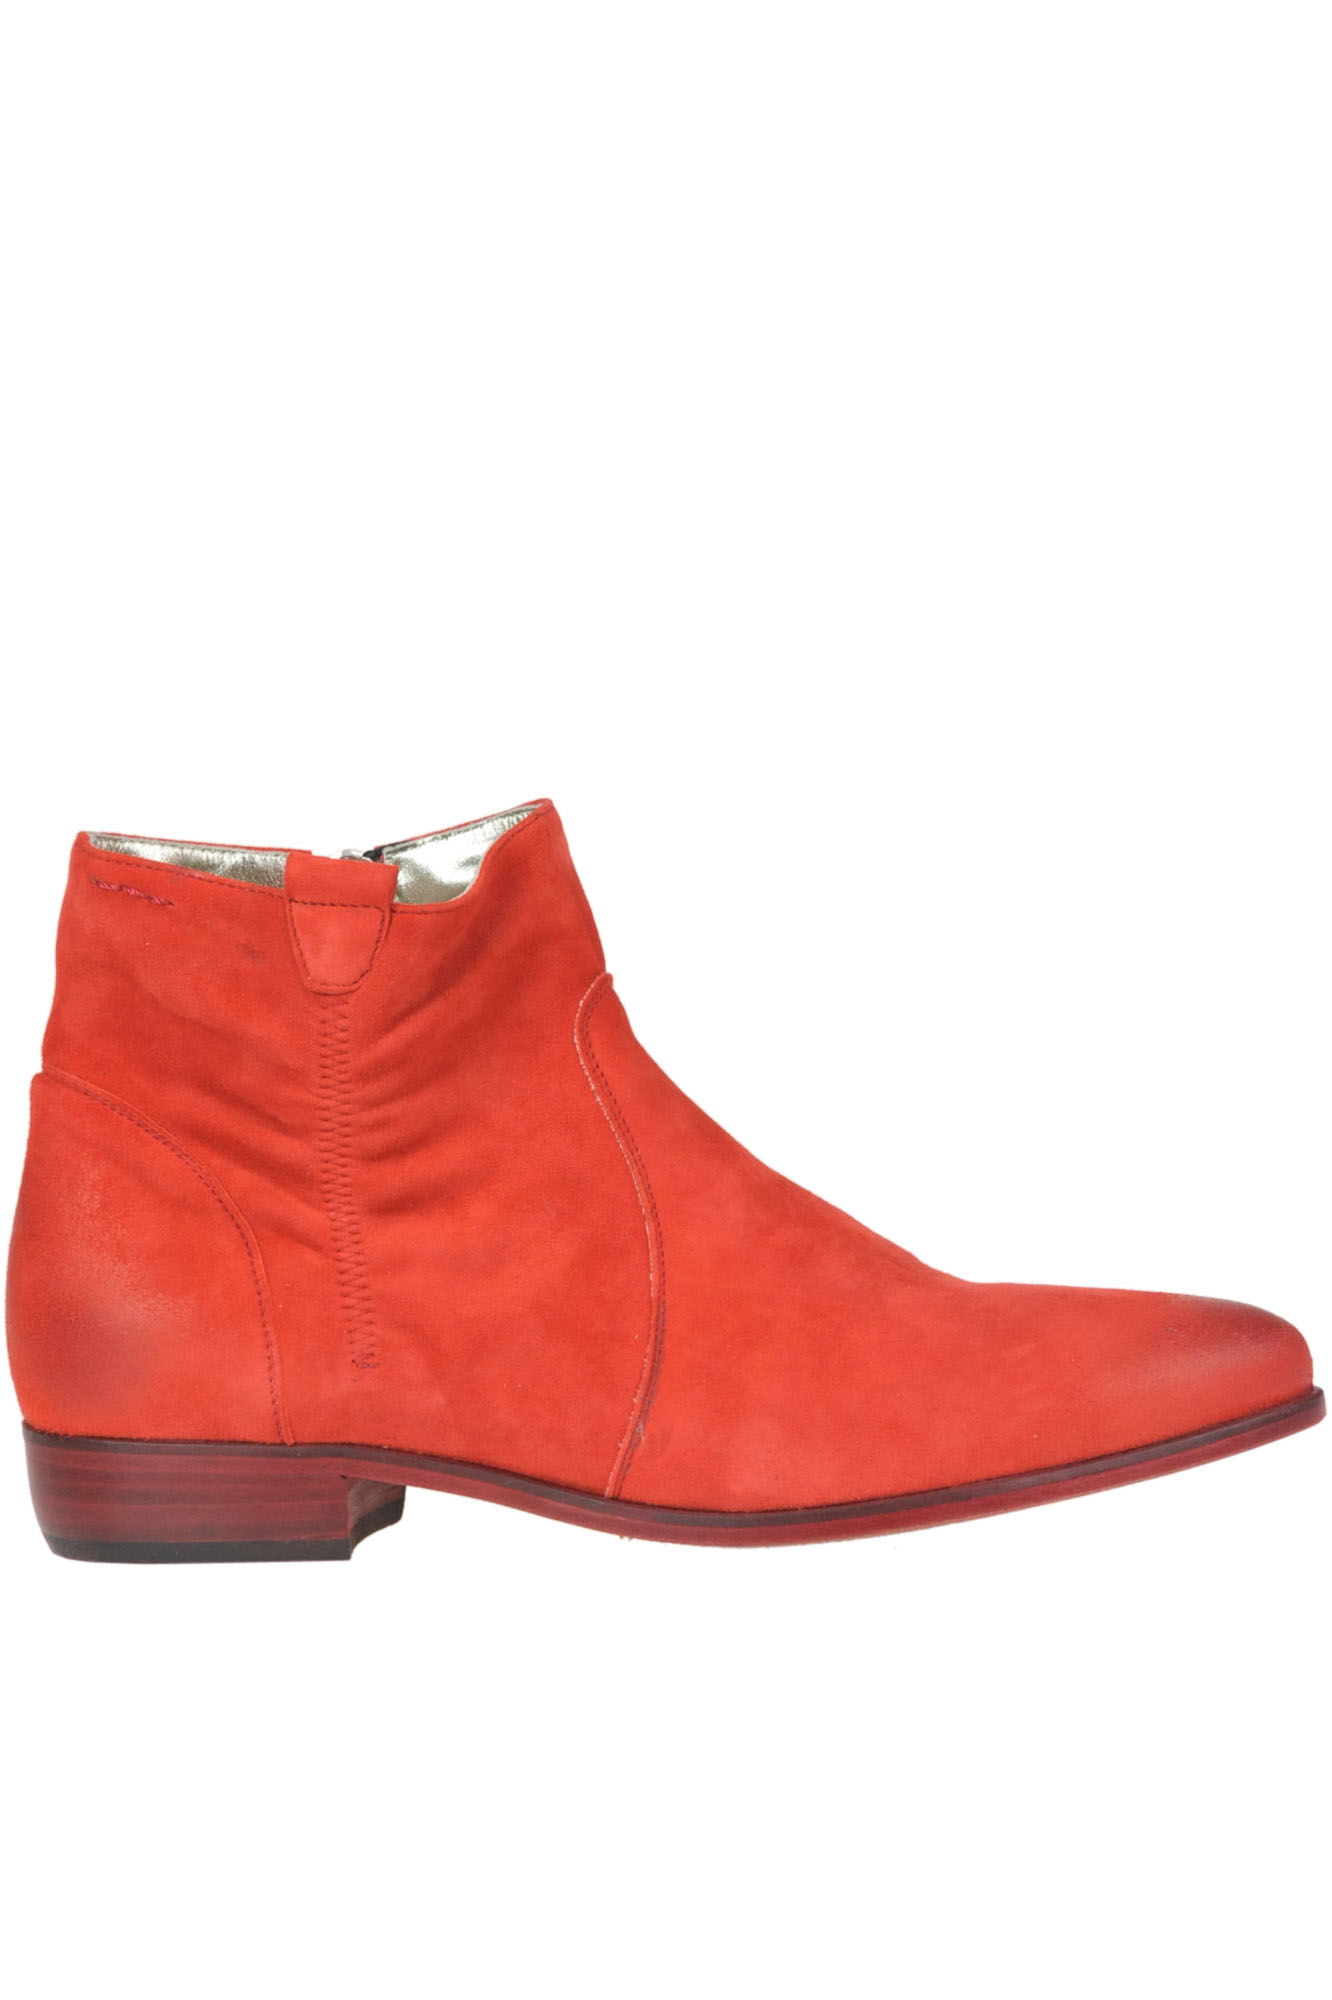 ALEXANDER HOTTO Suede Ankle-Boots in Red